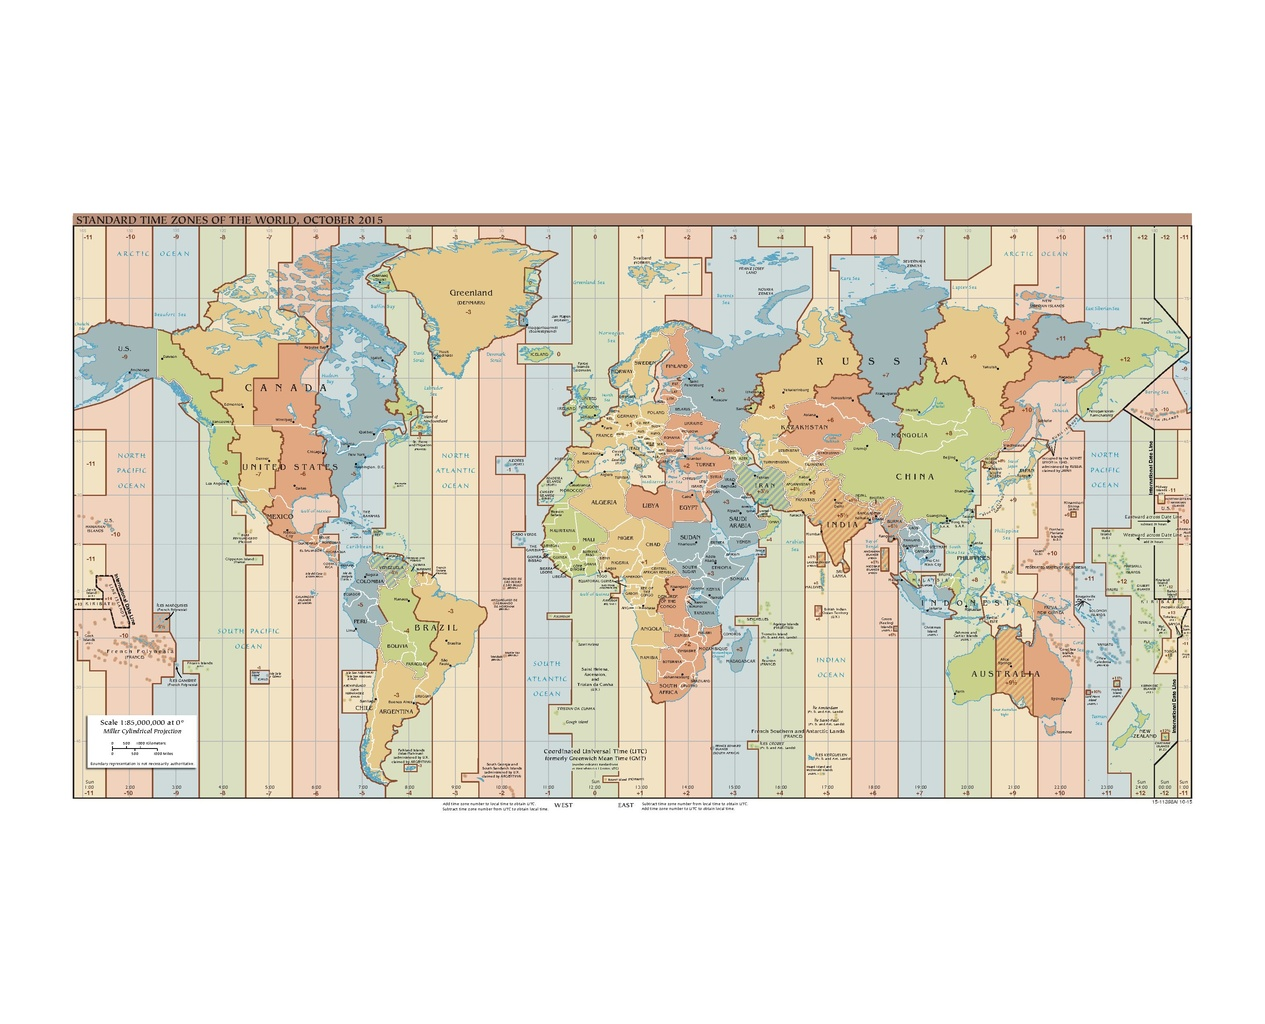 File Standard Time Zones Of The World October